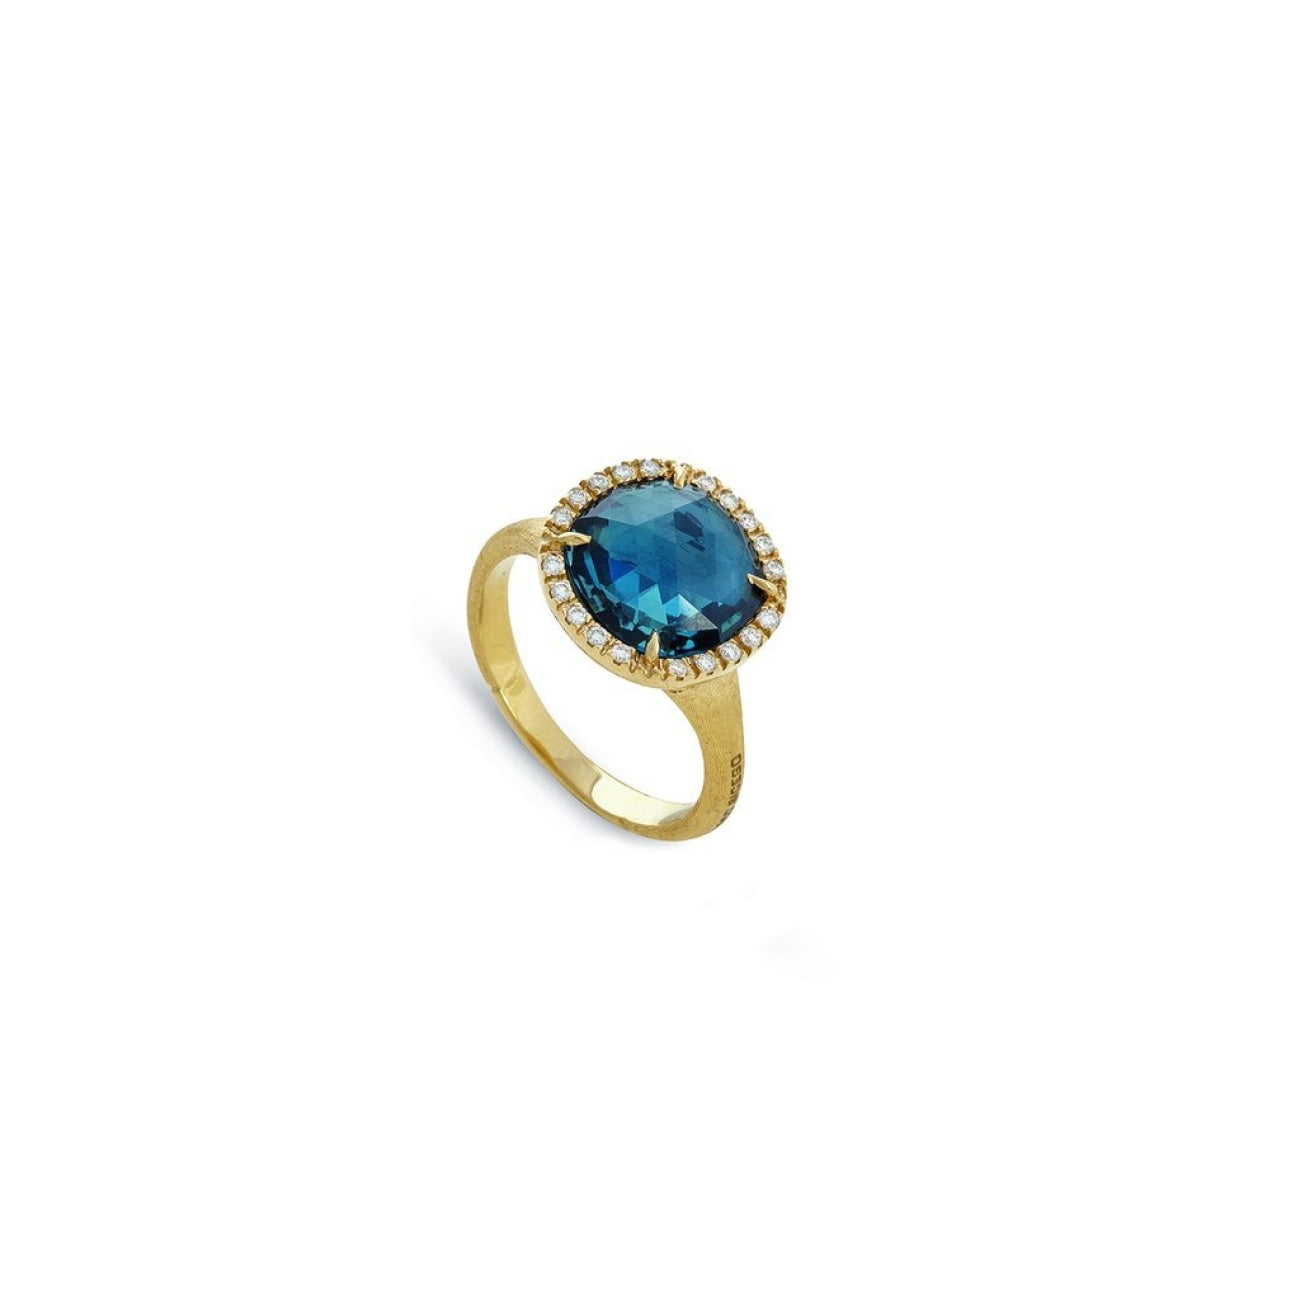 Marco Bicego Jewelry - 18K Yellow Gold and London Blue Topaz Jaipur Diamonds Small Ring | Manfredi Jewels